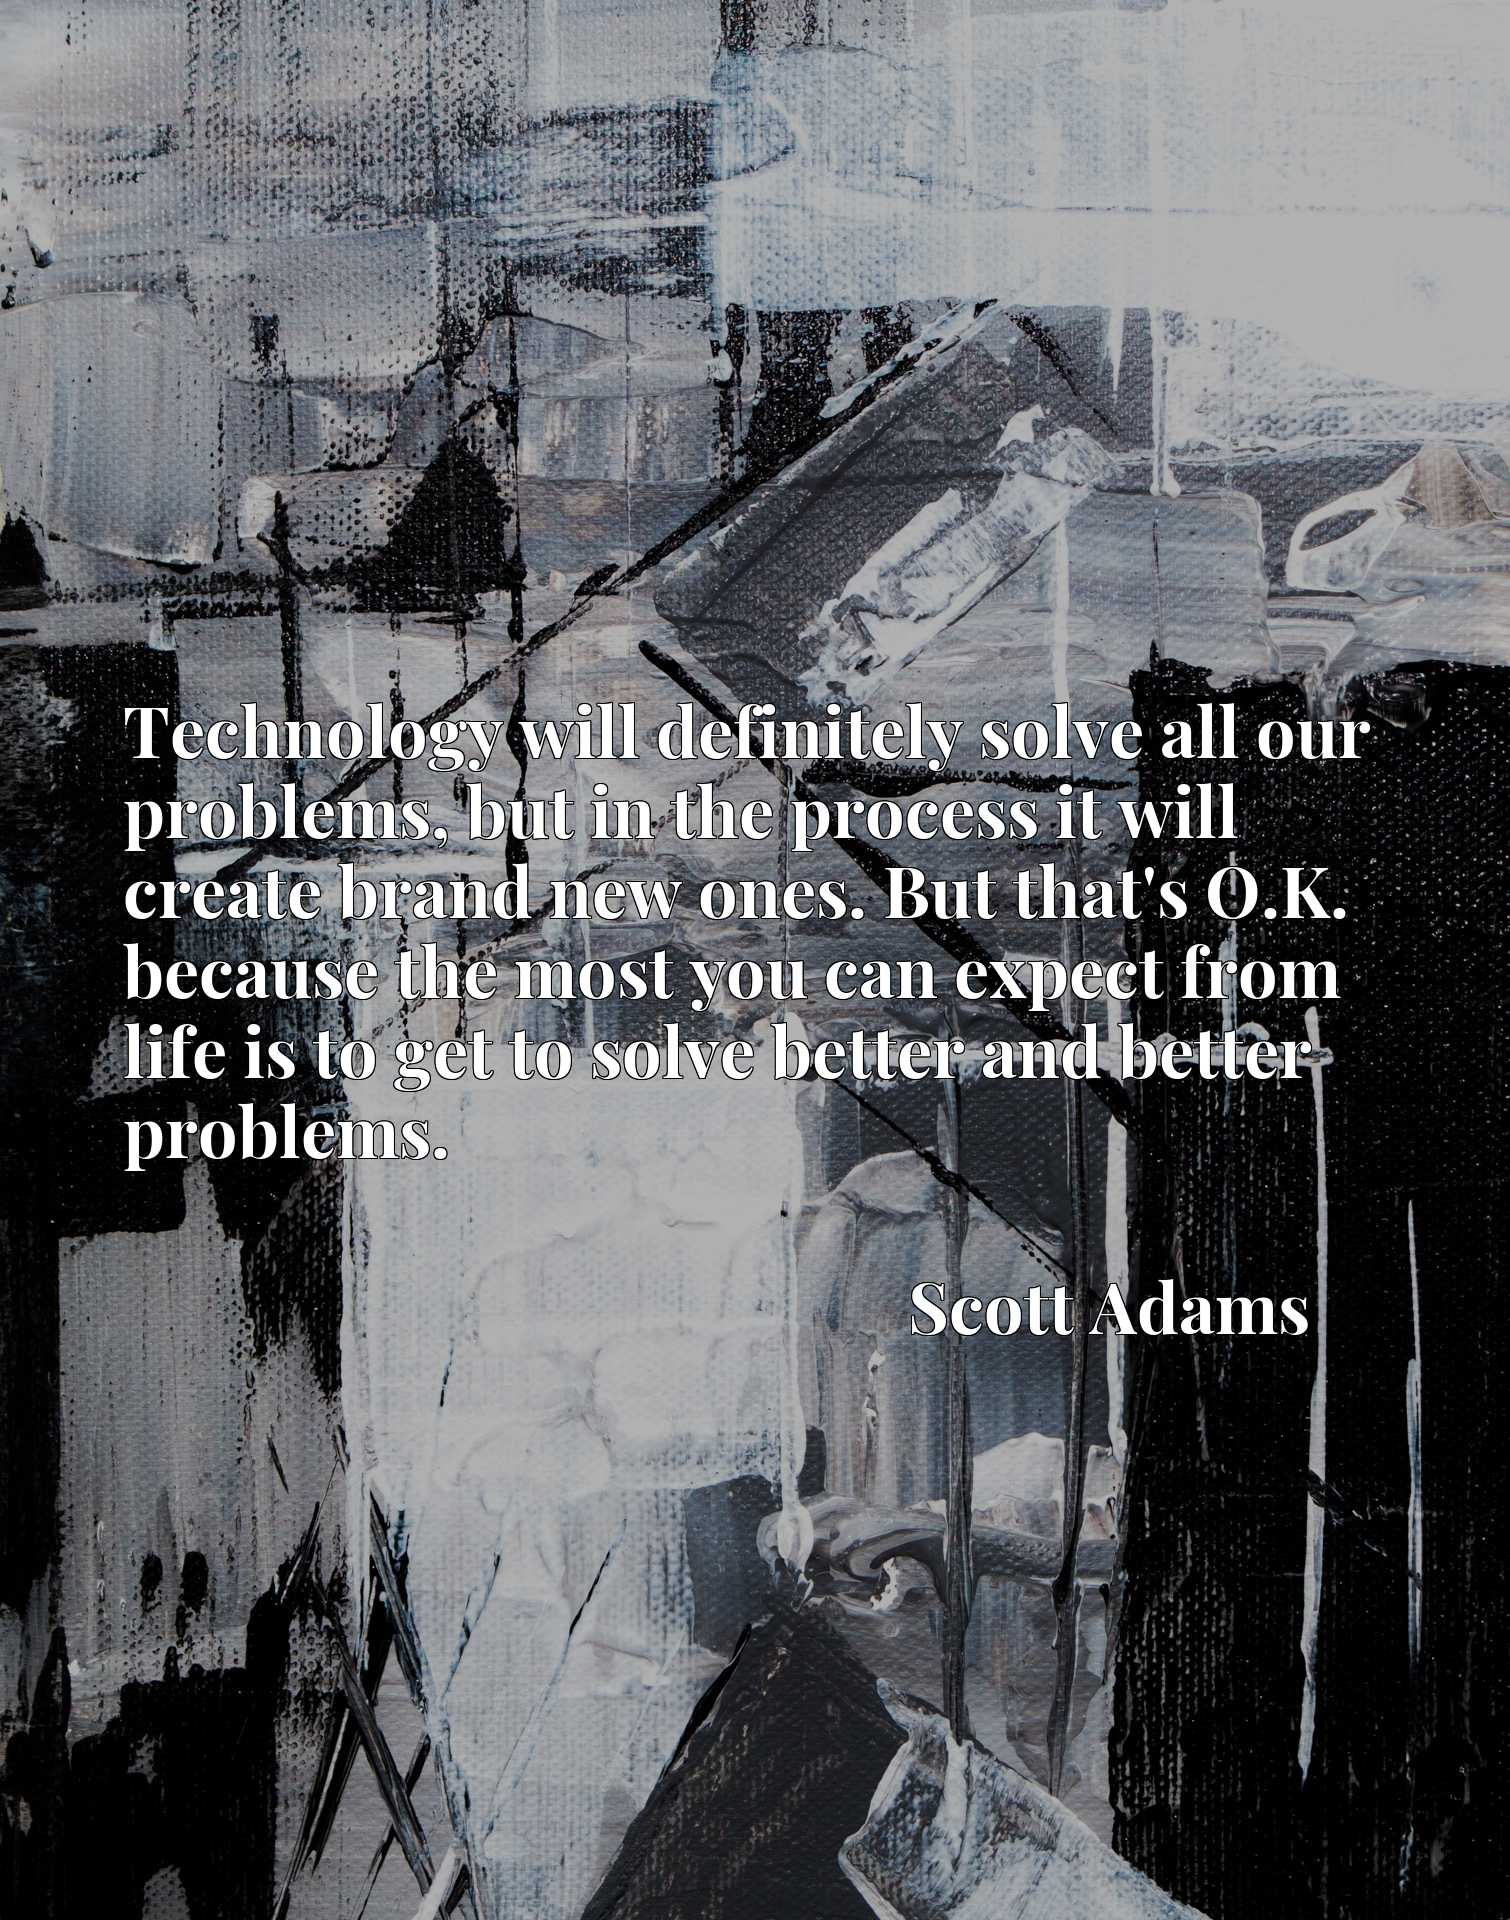 Technology will definitely solve all our problems, but in the process it will create brand new ones. But that's O.K. because the most you can expect from life is to get to solve better and better problems.